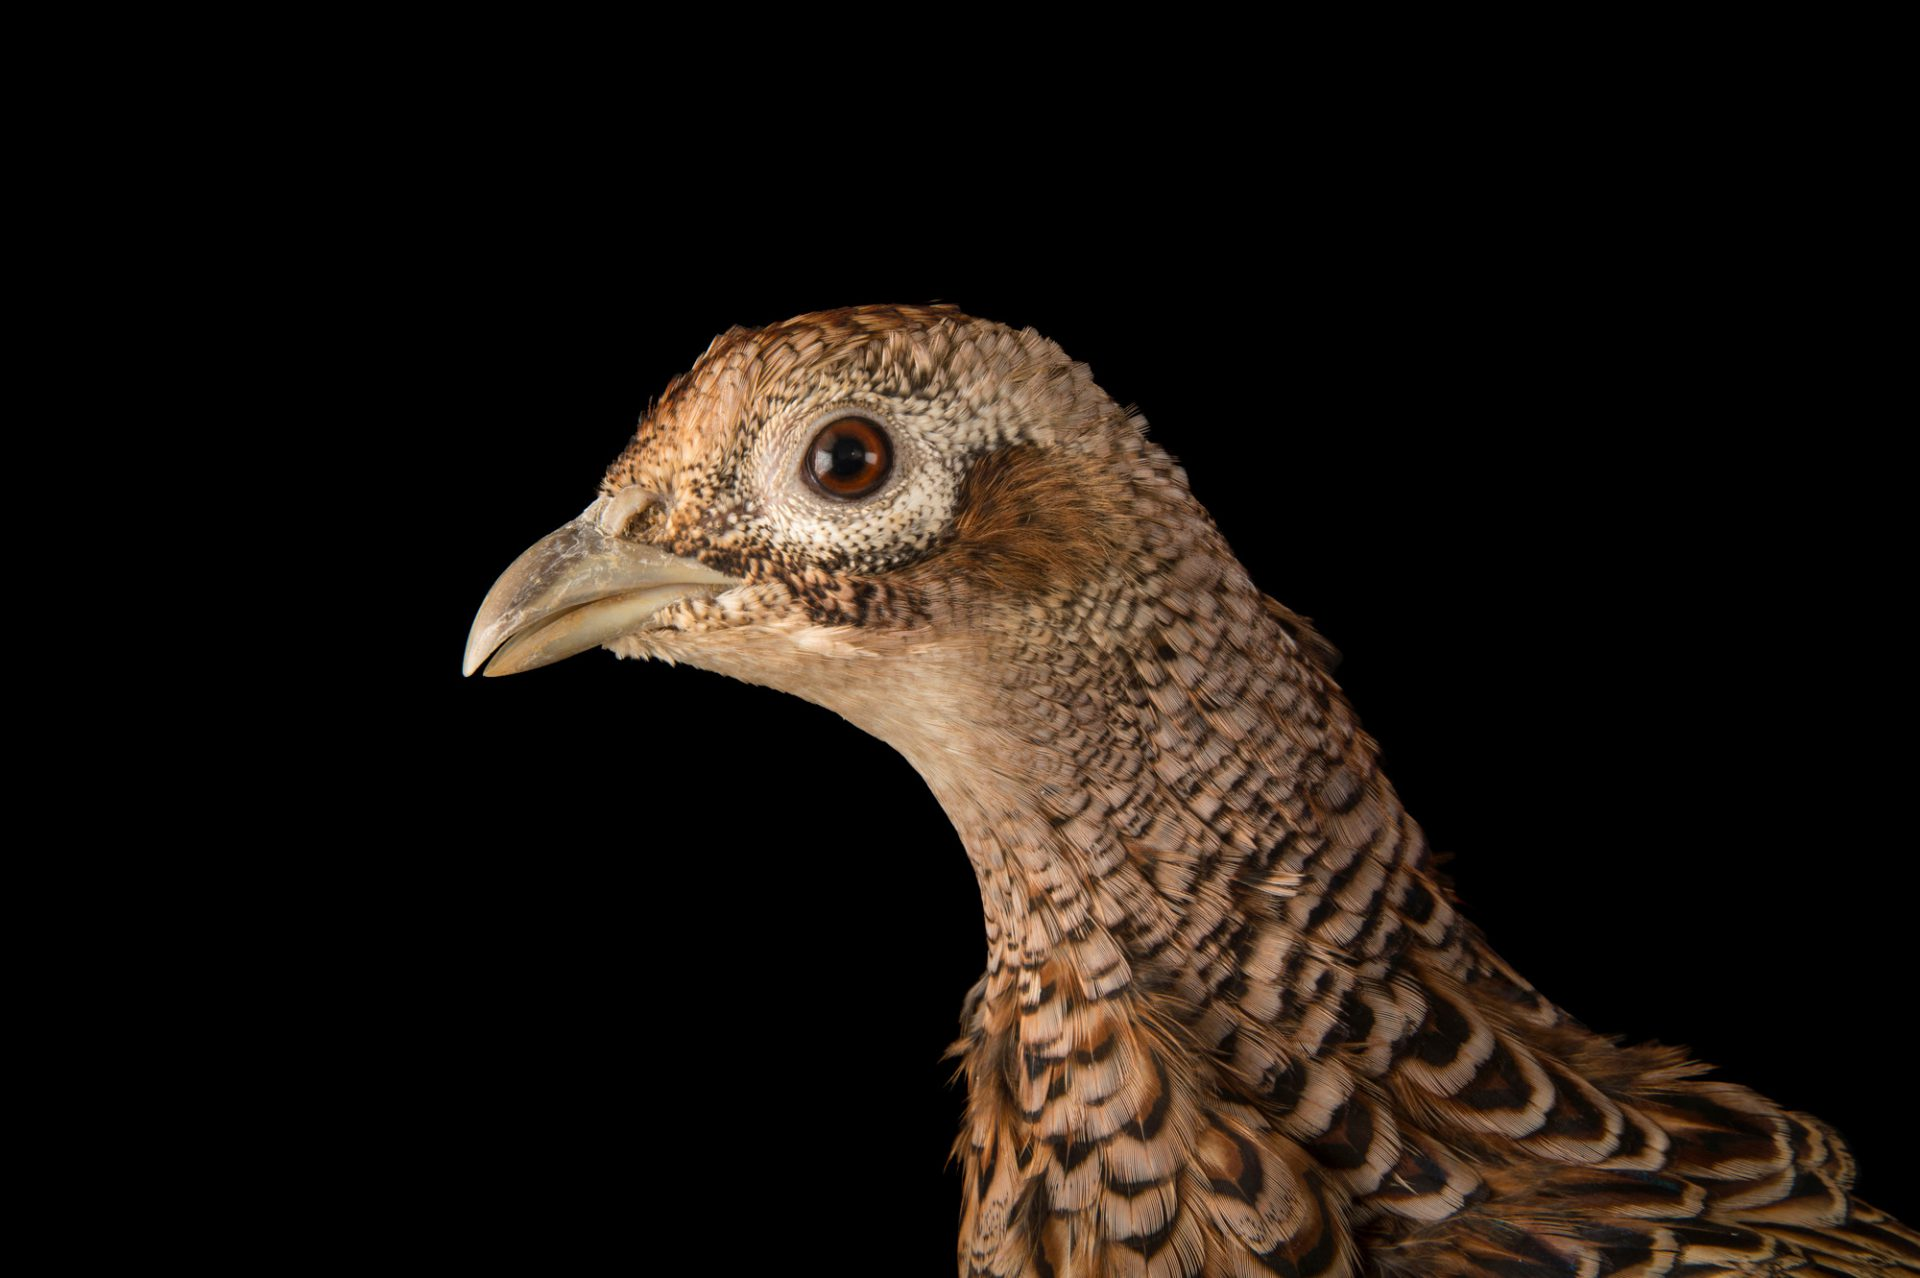 Photo: A female Manchurian ring necked pheasant (Phasianus colchicus pallasi) at the Plzen Zoo.